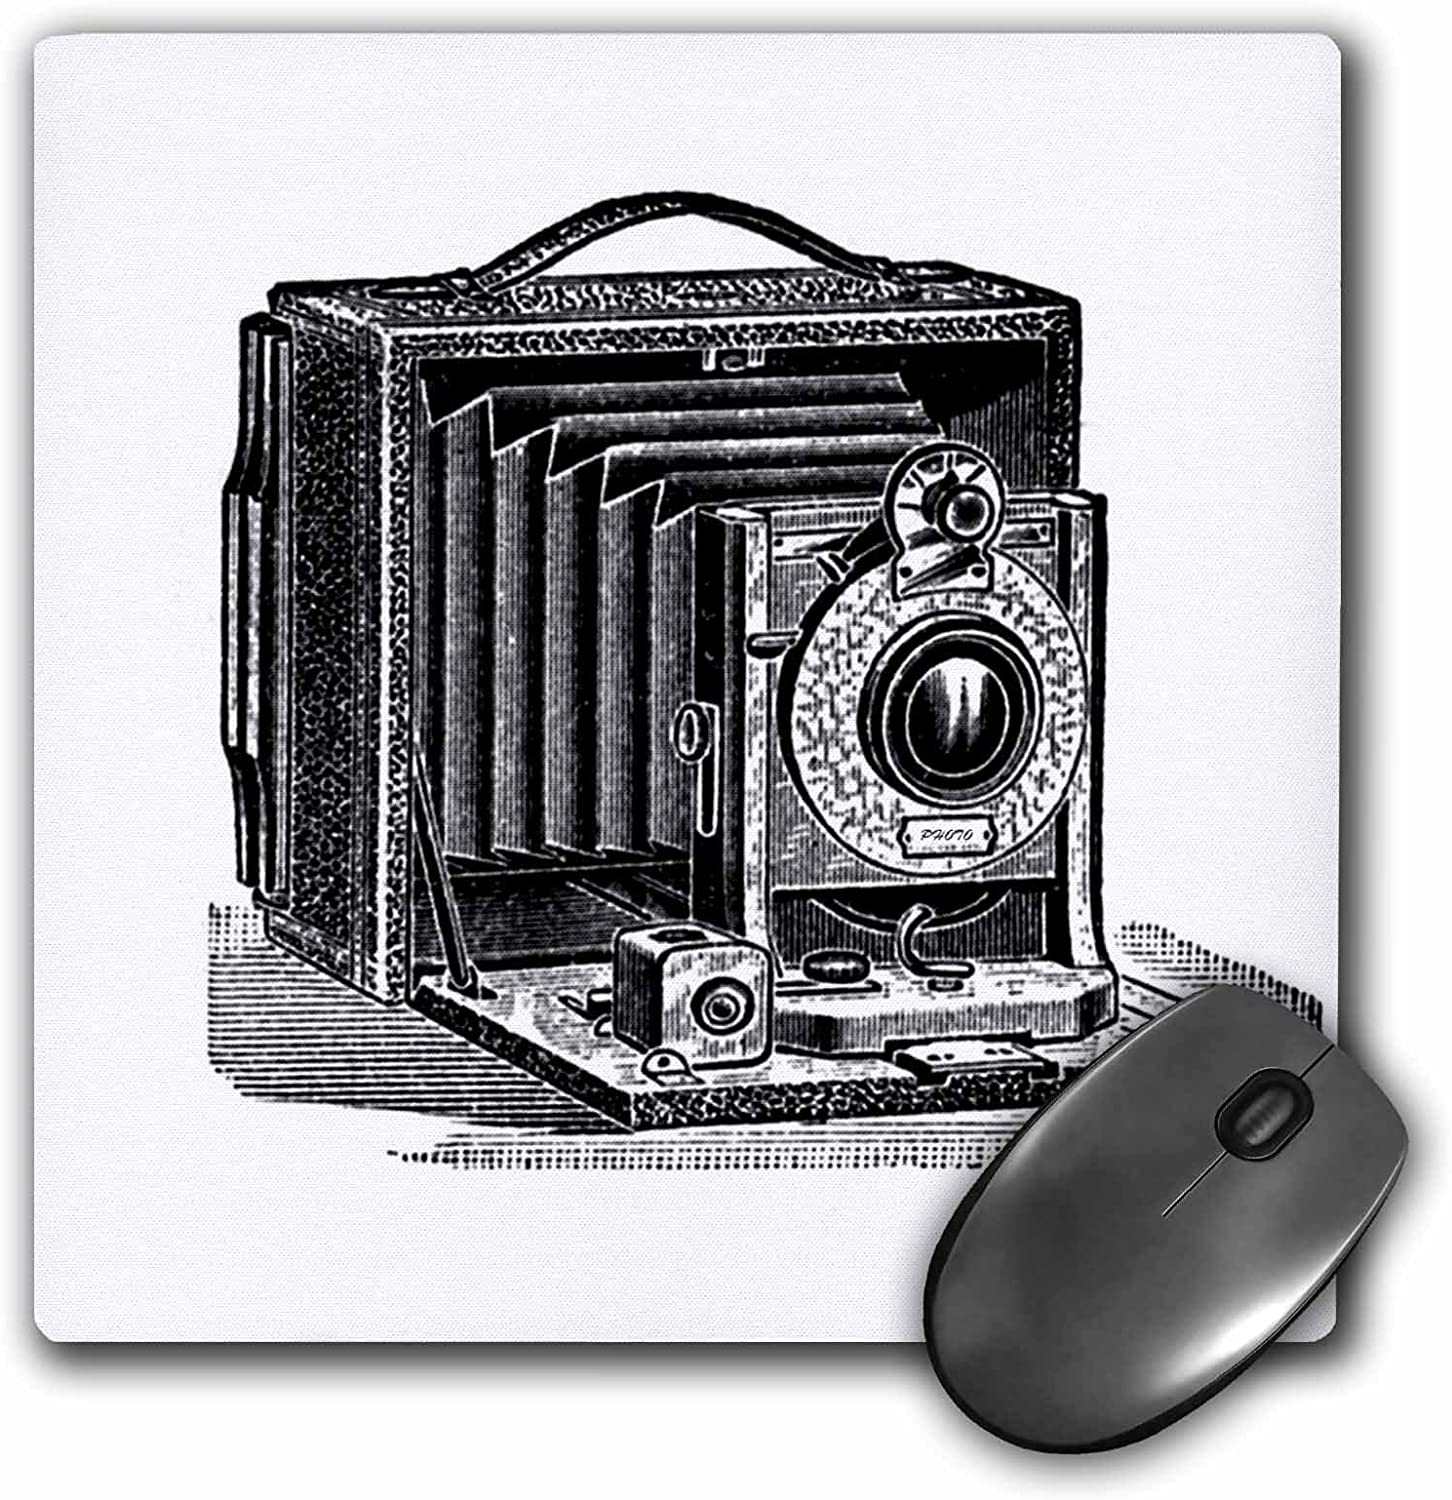 Mouse Pad 3drose Black and White Vintage Camera Ink and Pen Drawing Print Old-Fashioned Photography Photographer